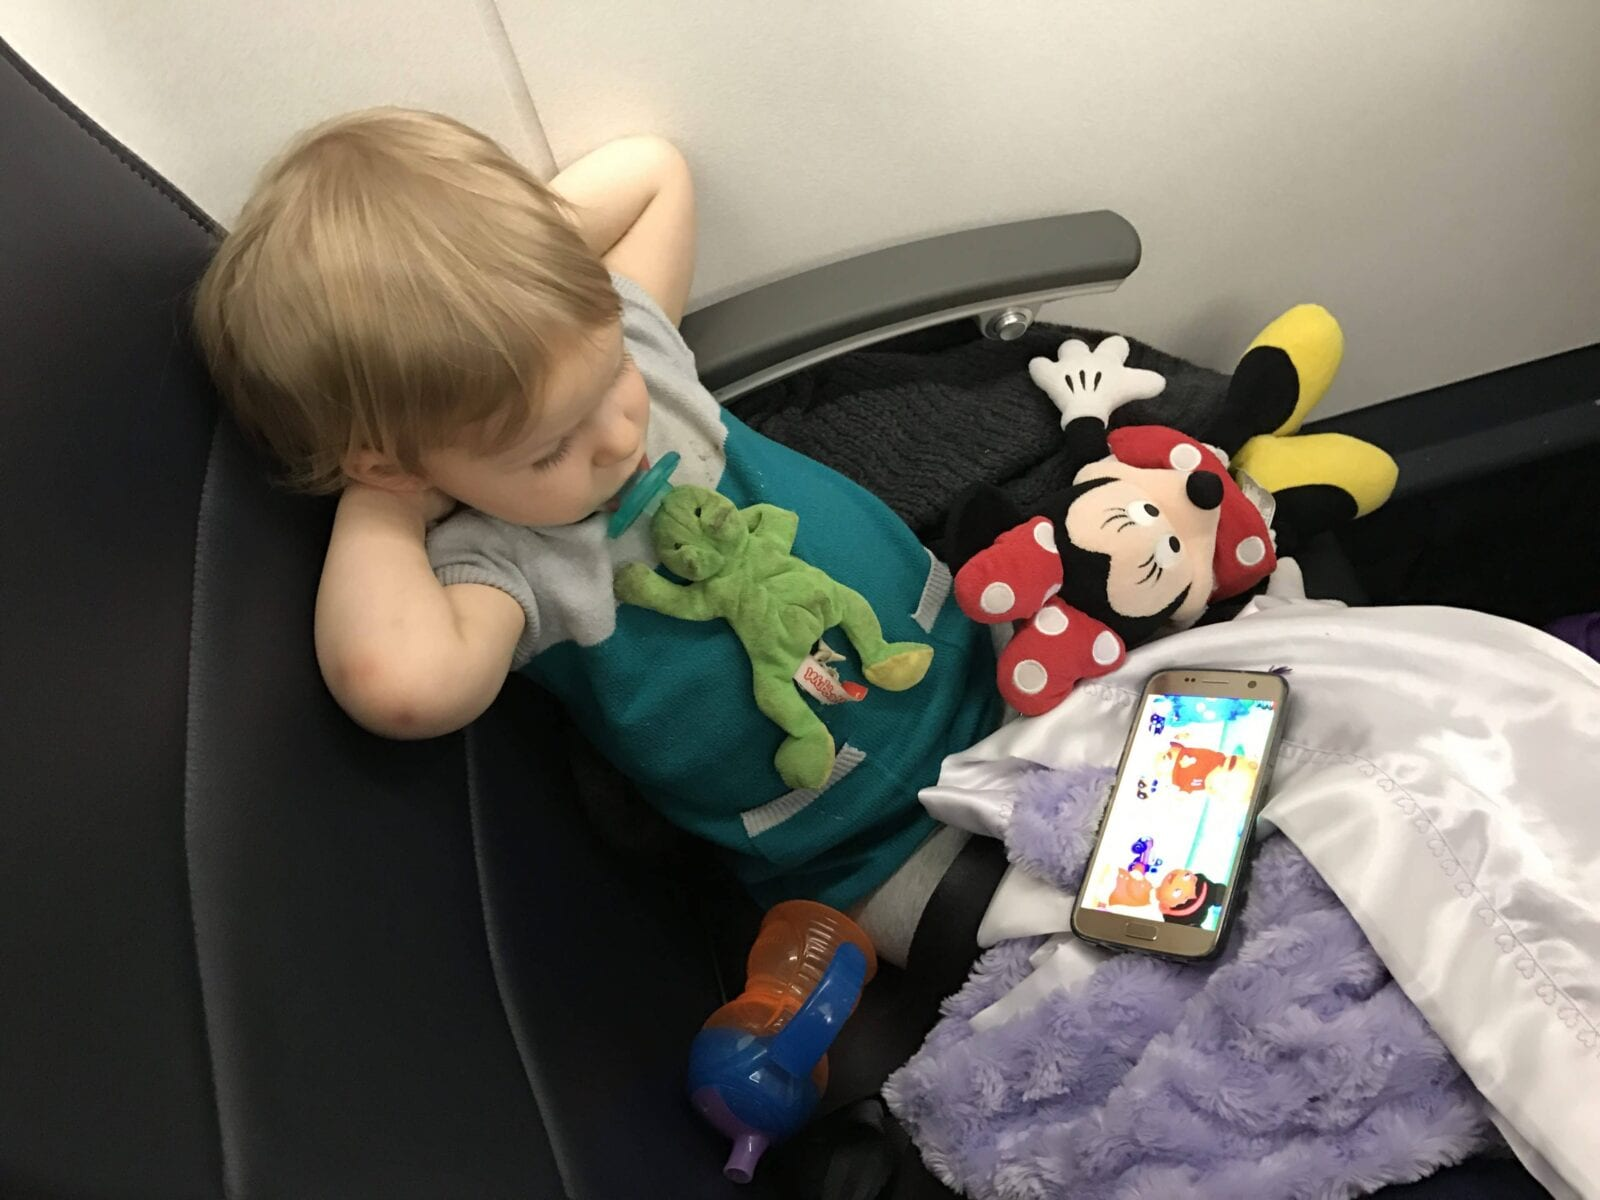 Child in airplane seat with Minnie Mouse image.